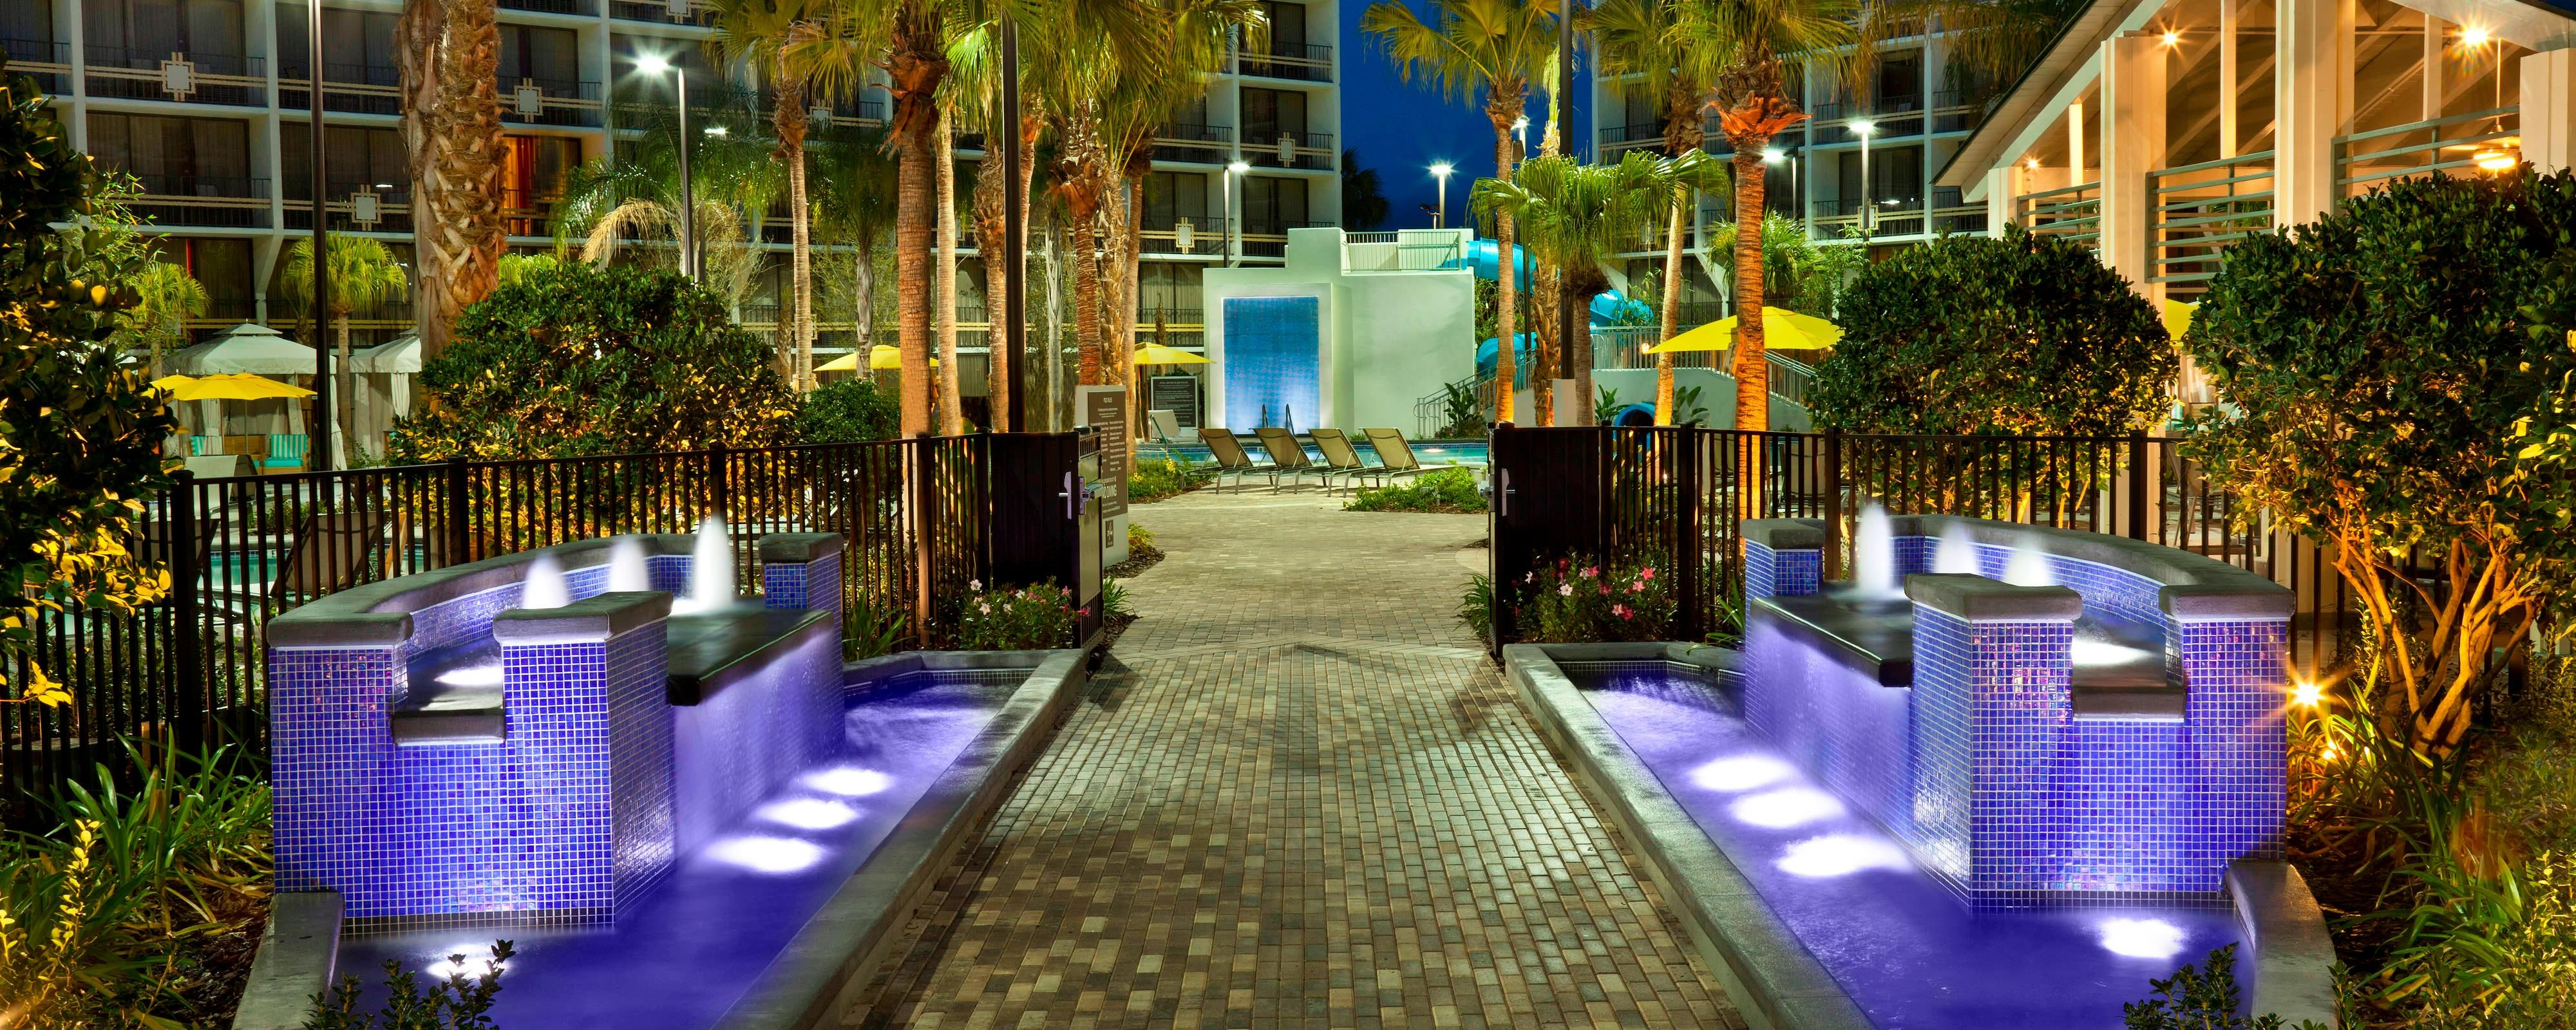 27 Palms Courtyard - Entrance